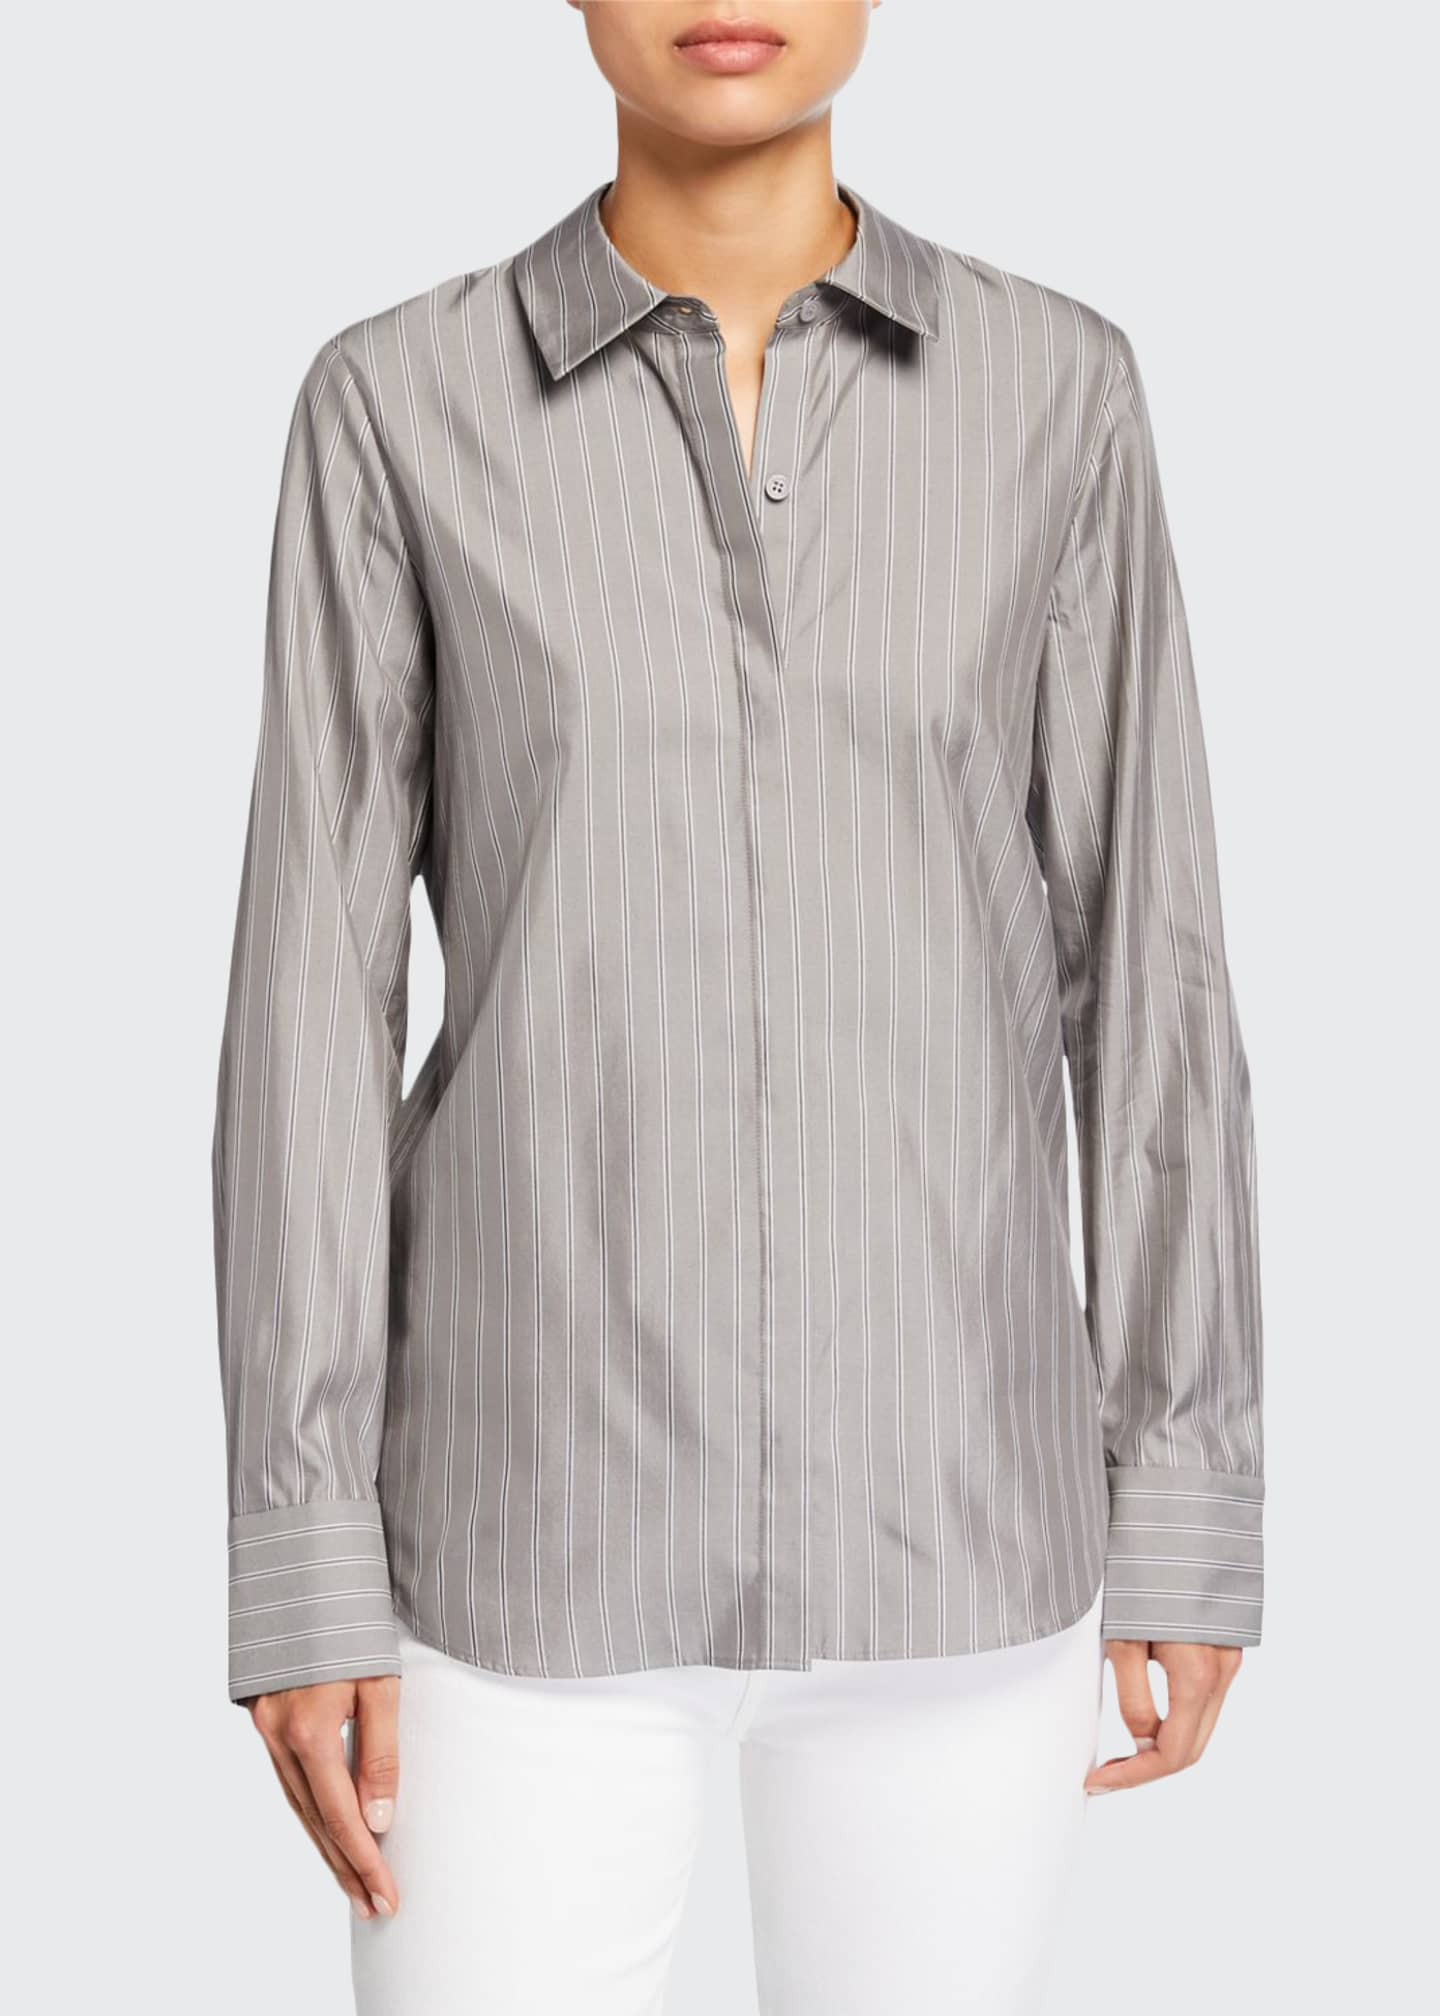 Lafayette 148 New York Scottie Genteel Stripes Button-Down